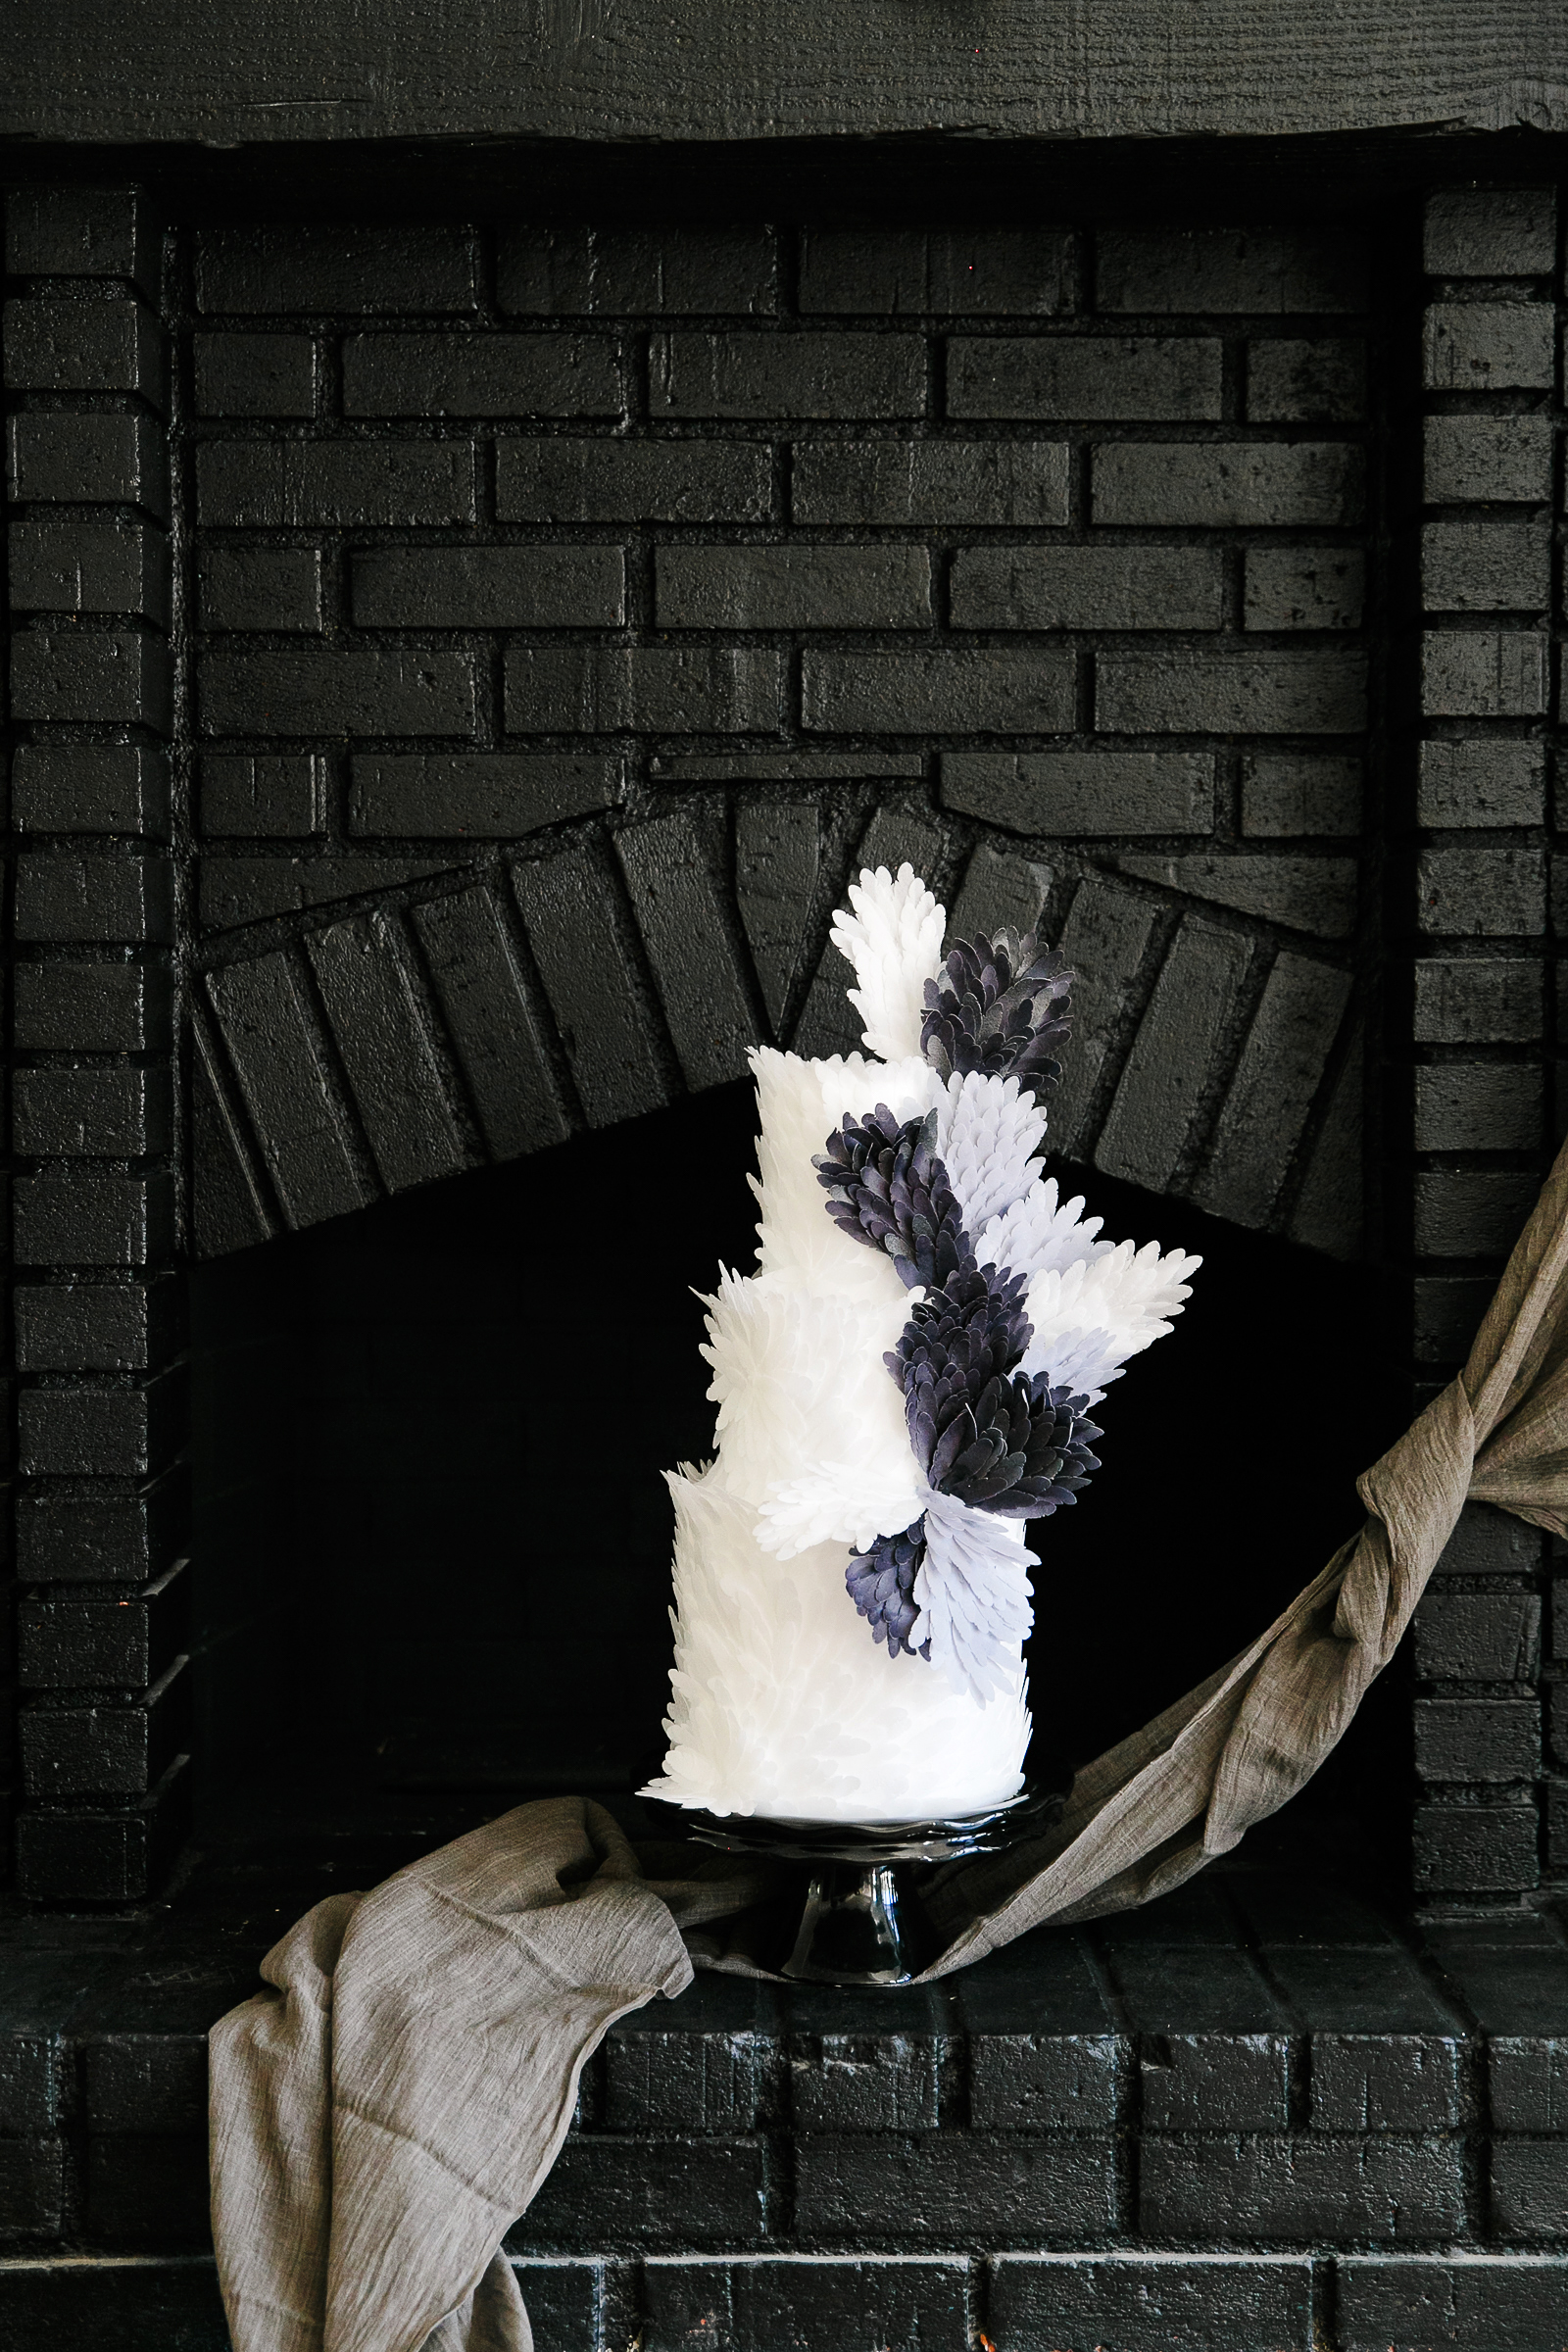 haunted movie house black brick fireplace with cake display